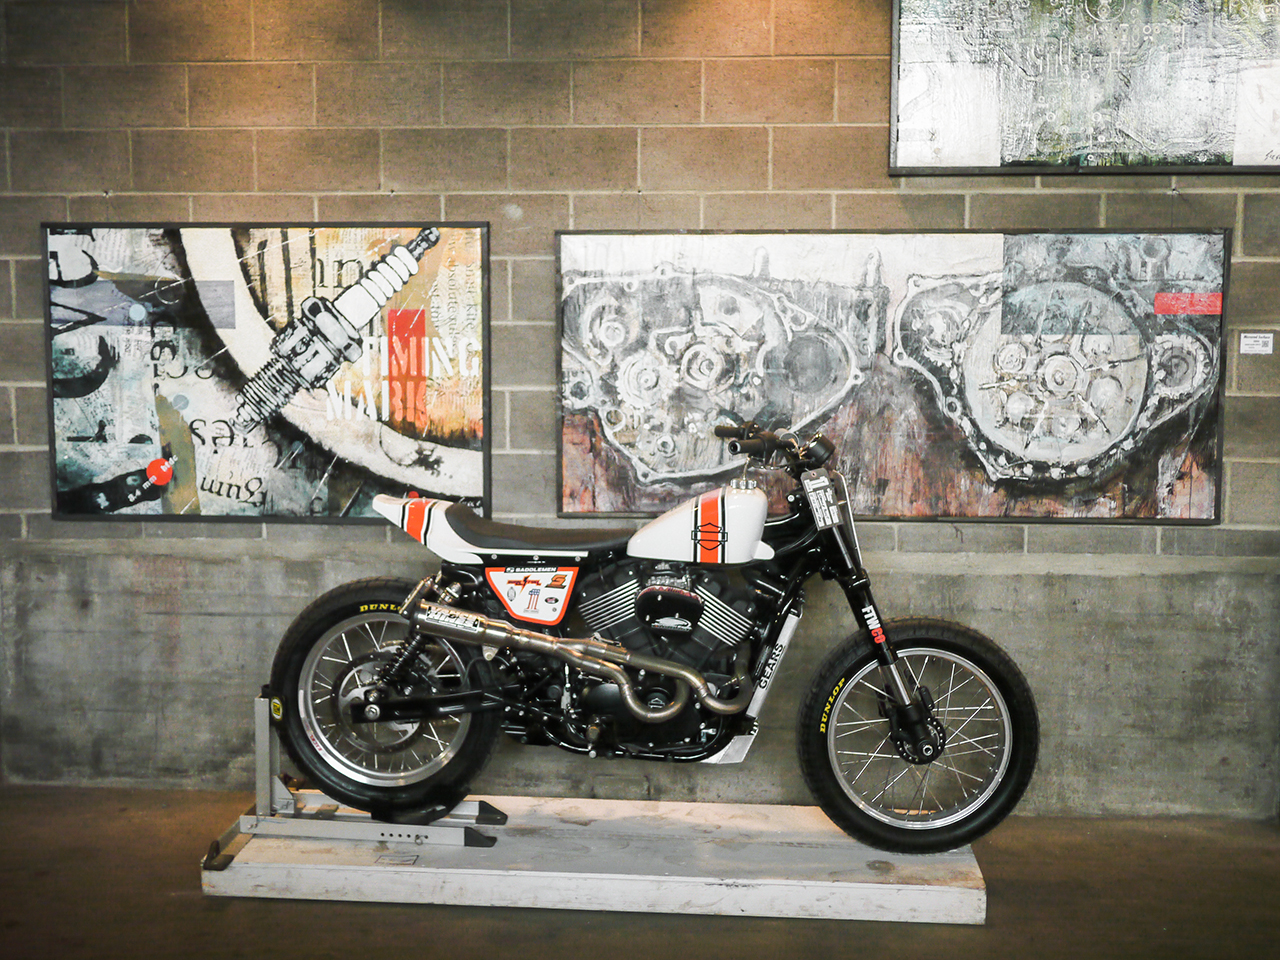 One of the hallmarks of the One Moto Show is quality art staged with the motorcycles to show both to best advantage.